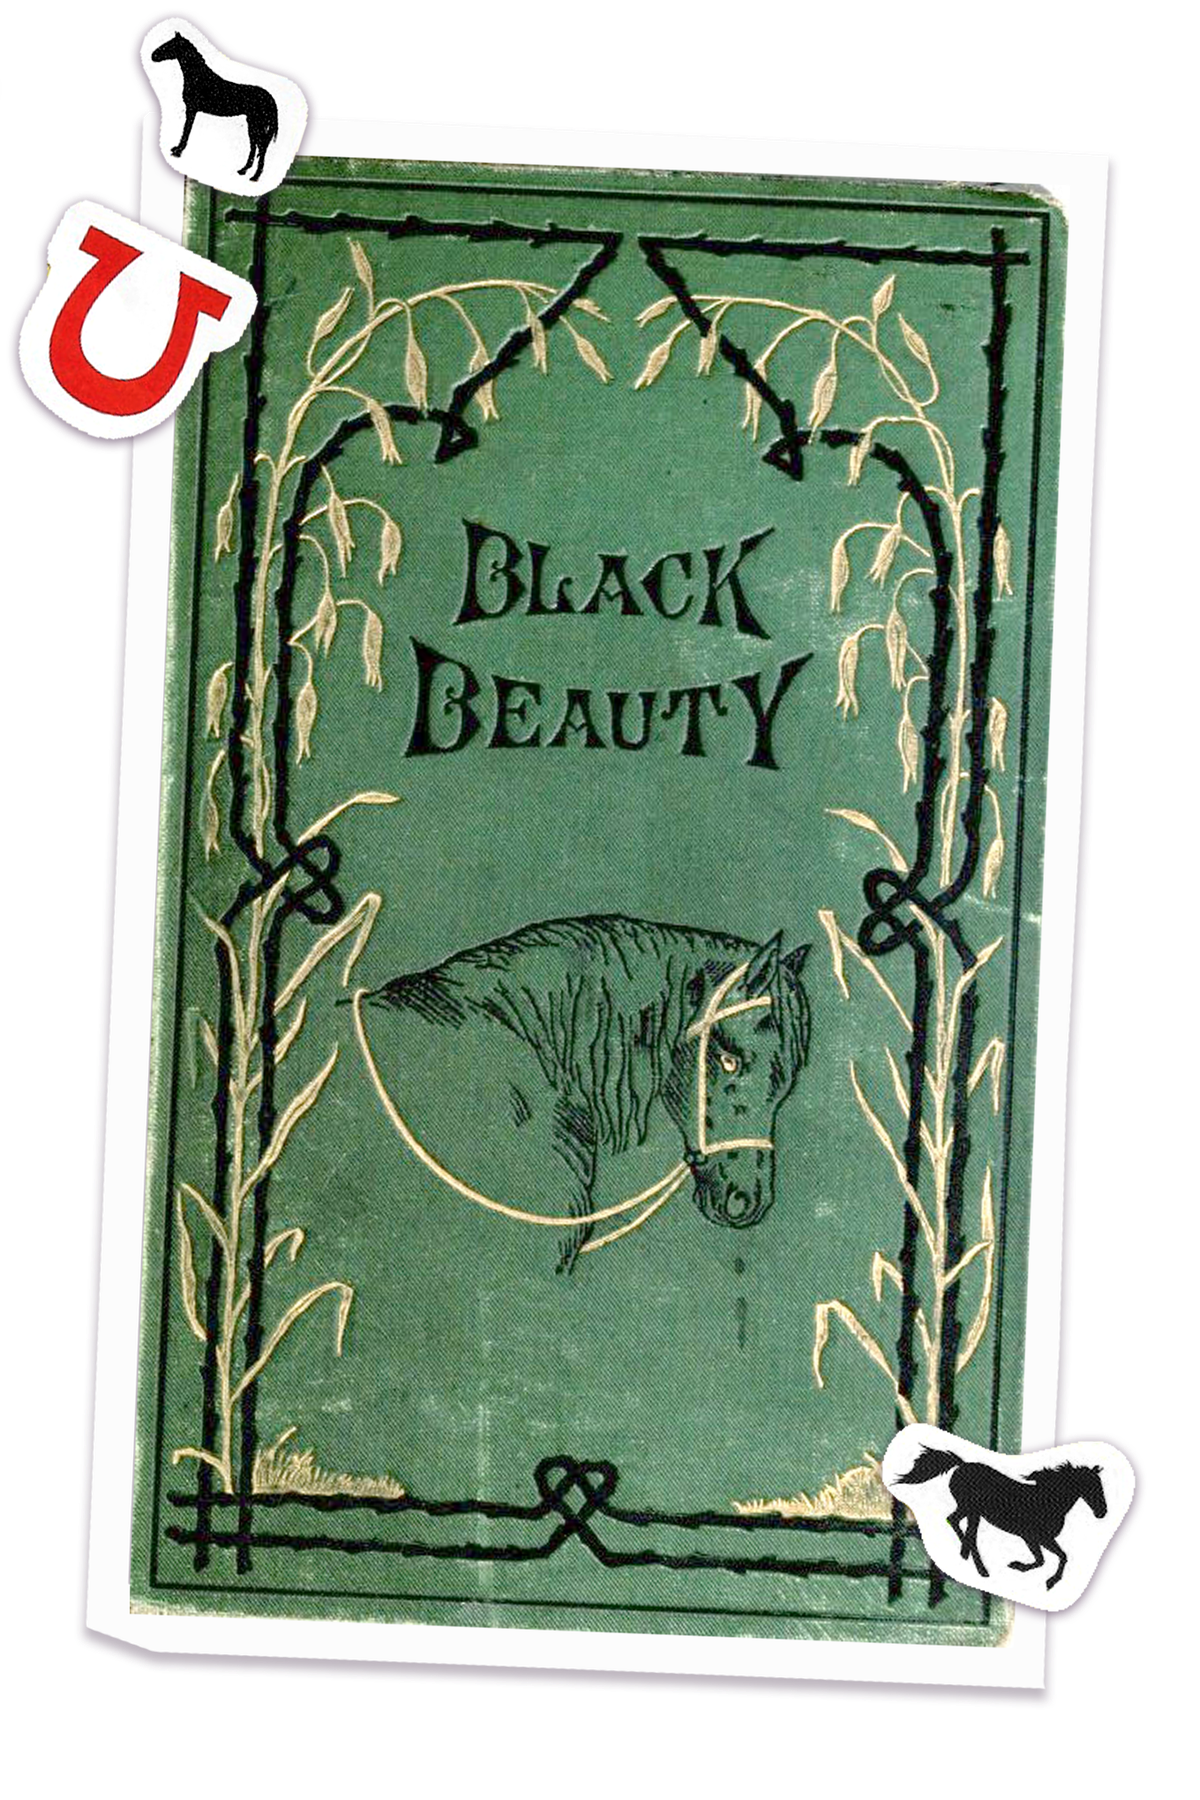 Cover of Black Beauty novel with horse and horse shoe stickers